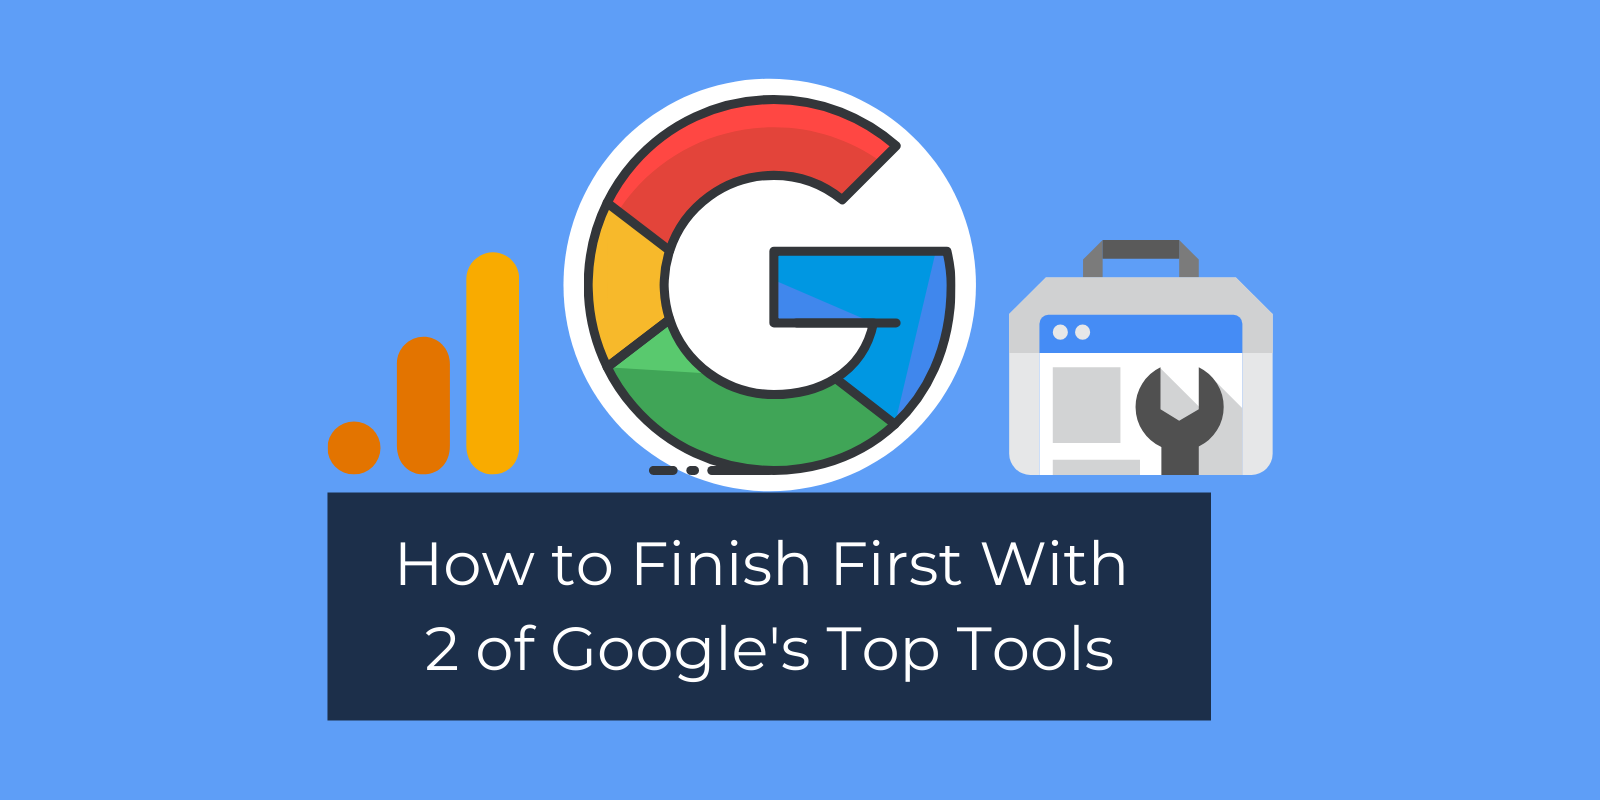 How to Finish First With 2 of Google's Top Tools